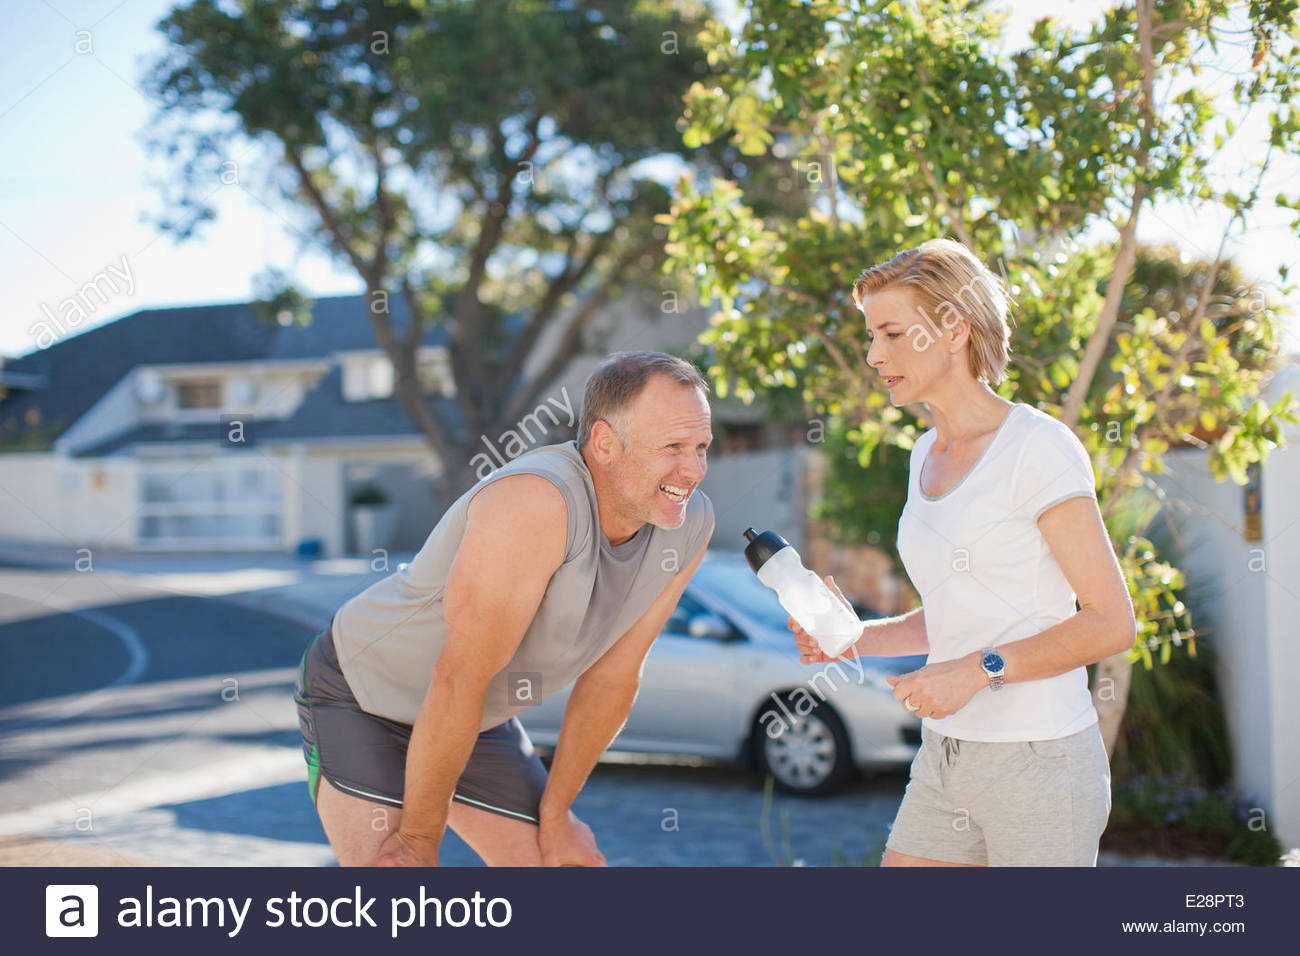 Couple relaxing after exercise - Stock Image